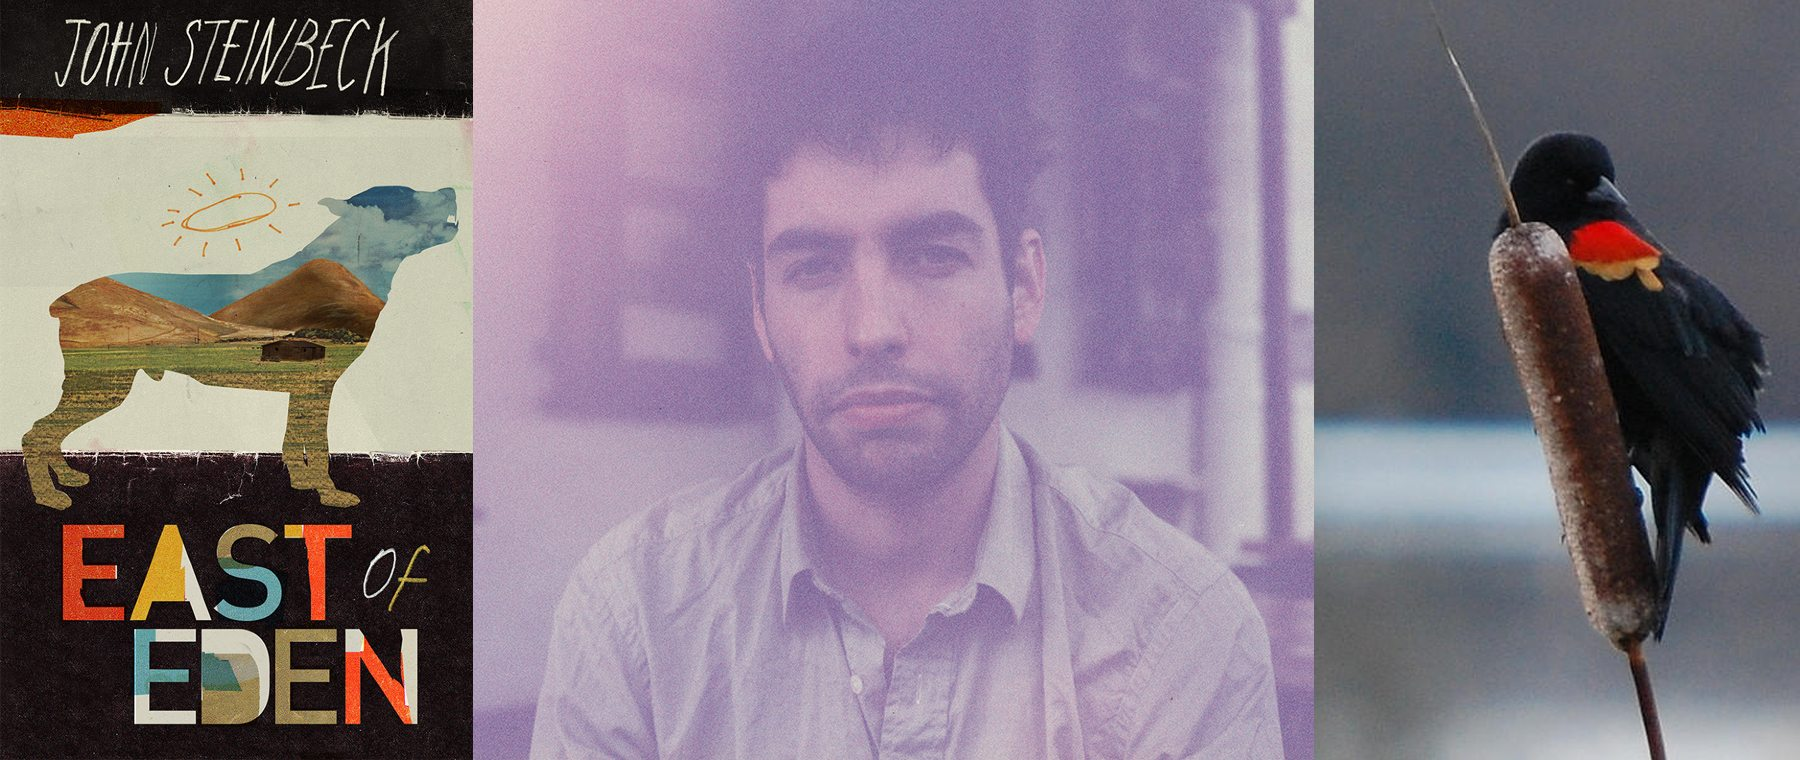 Leif Vollebekk's Twin Solitudes, a track-by-track journey through space, time, and Florida